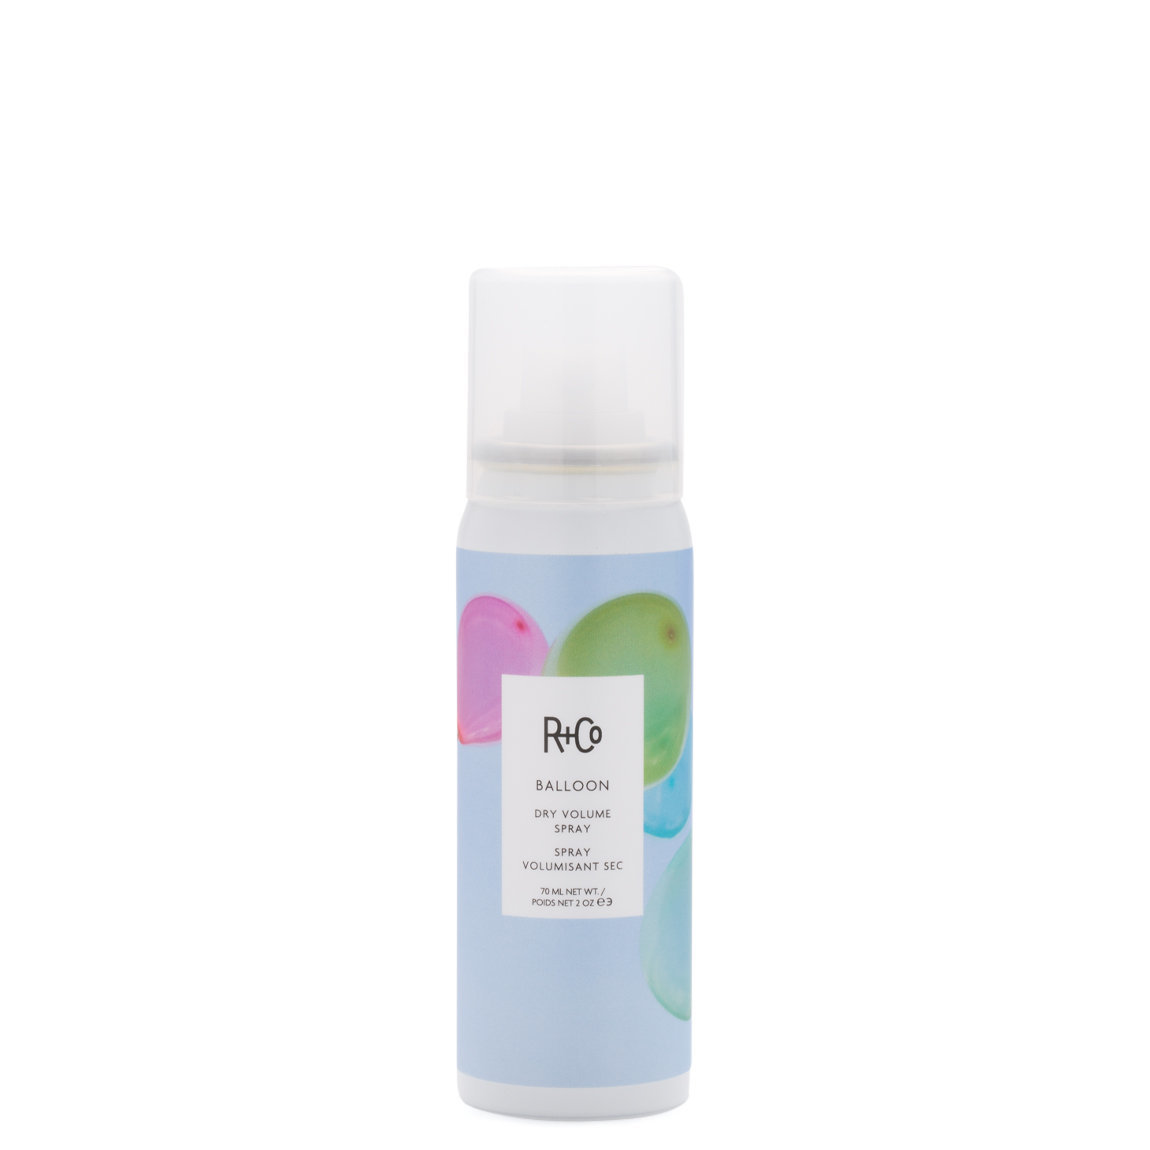 R+Co Balloon Dry Volume Spray 1.6 oz product smear.